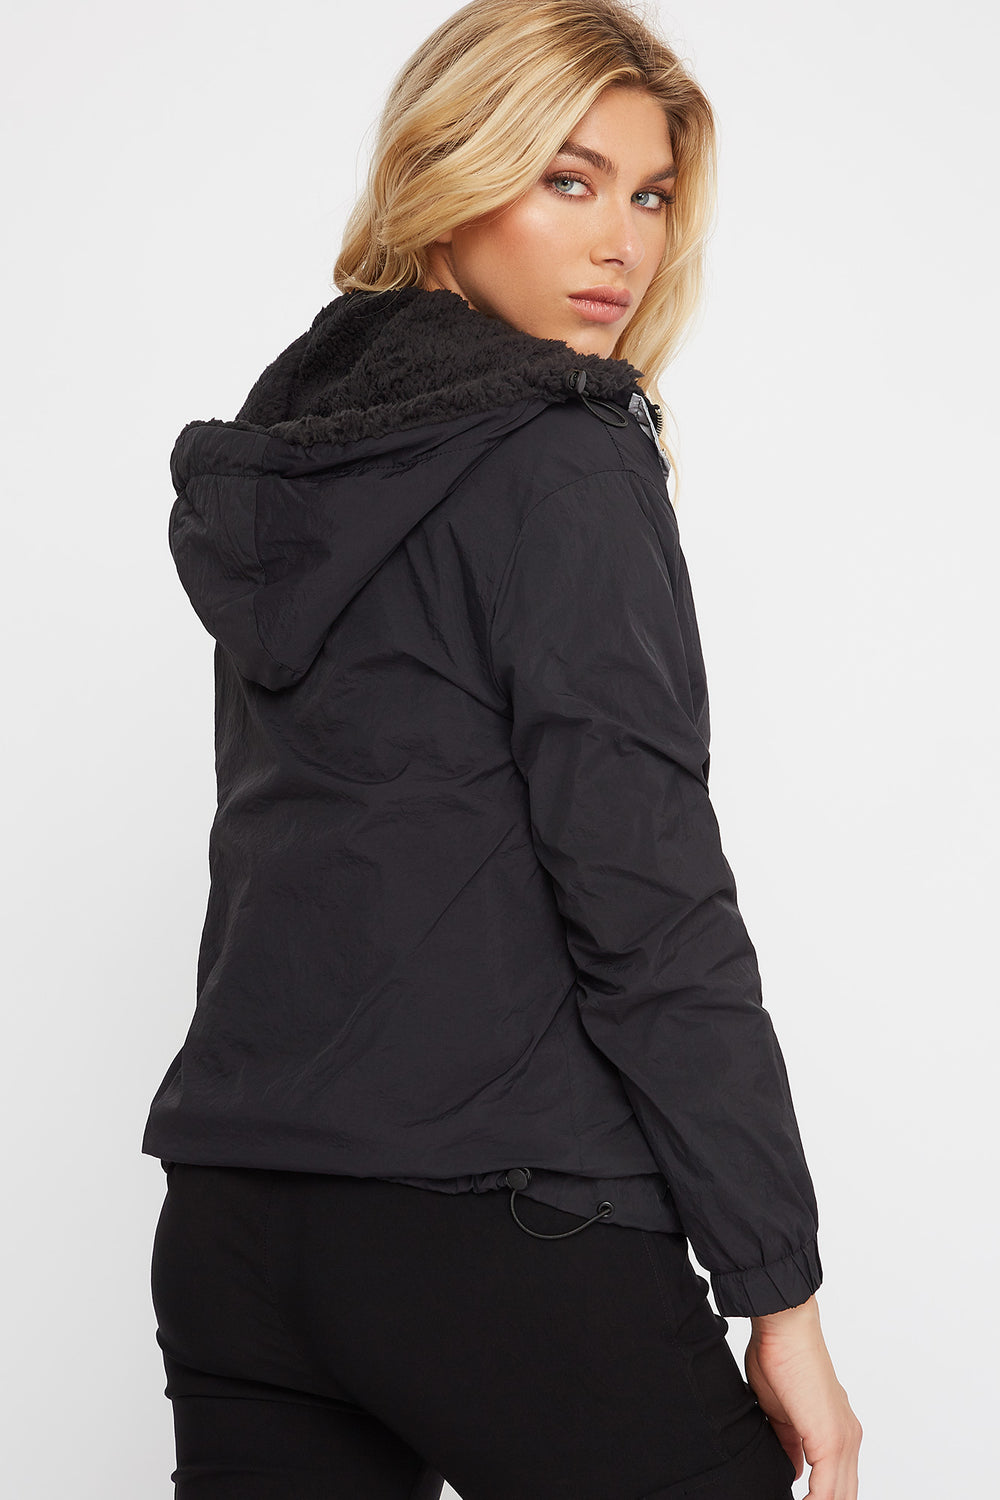 Sherpa Popover Hooded Windbreaker Jacket Black